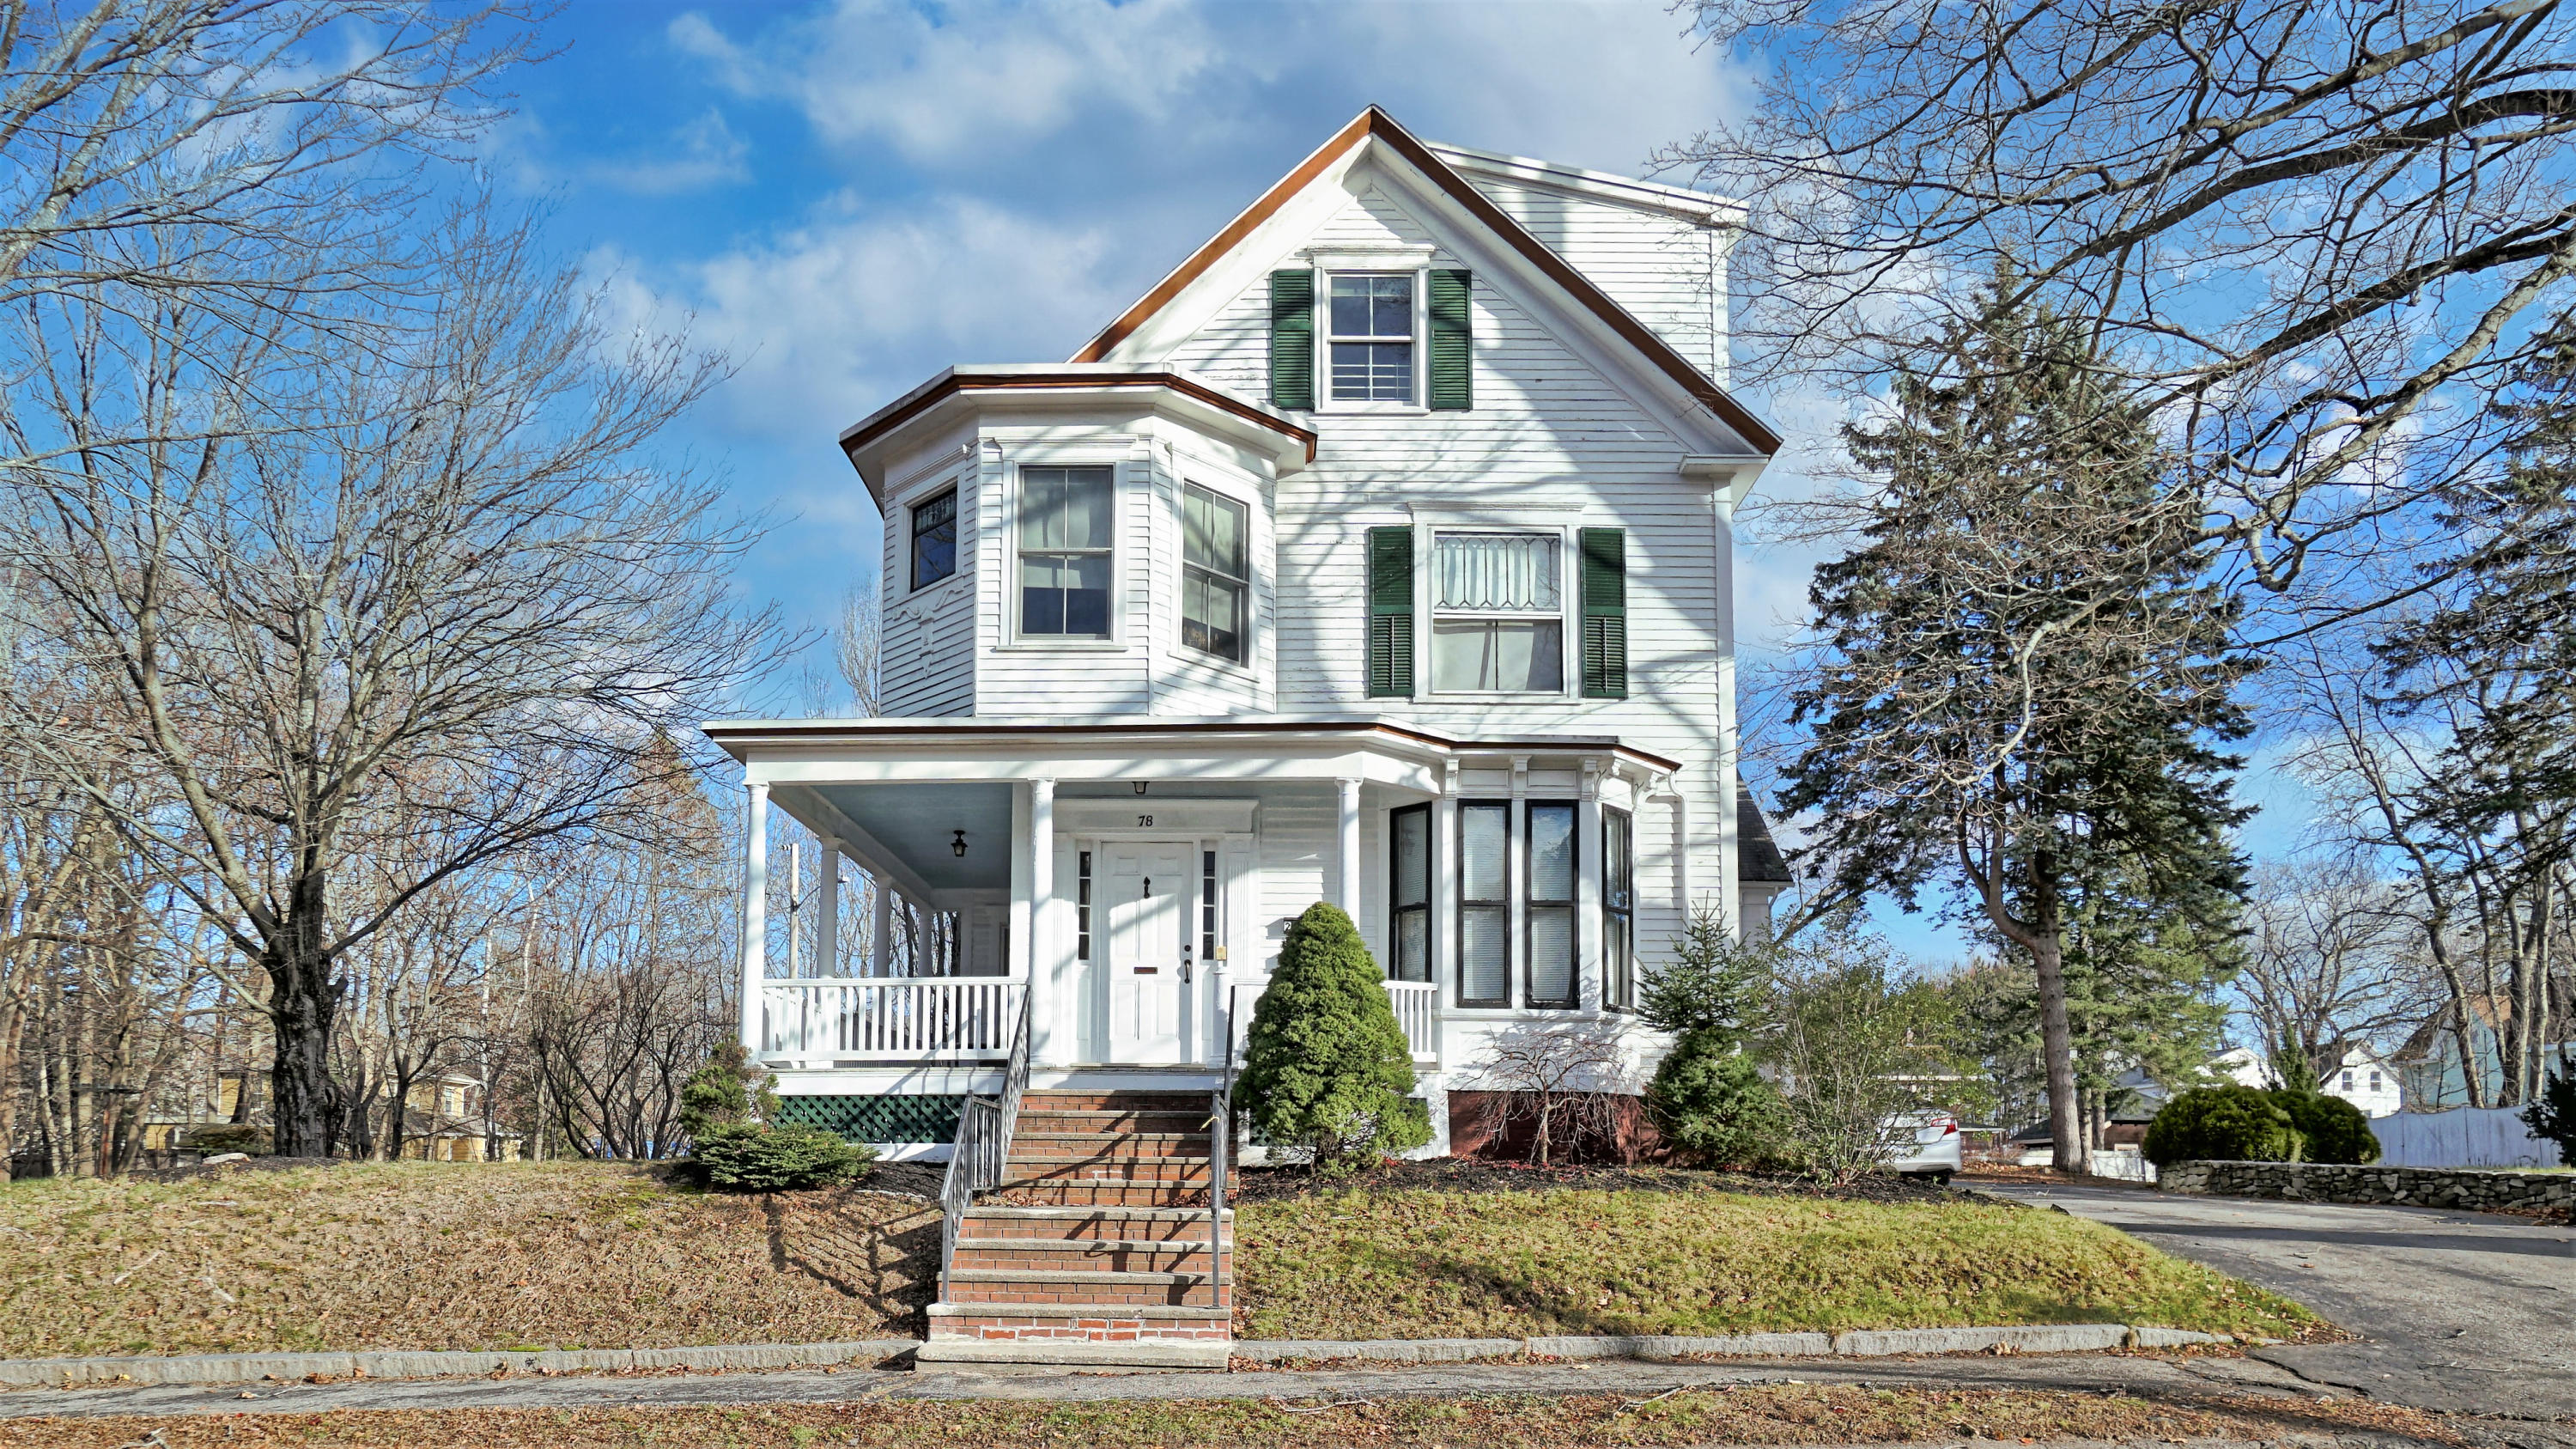 Main image for MLS listing 1476491